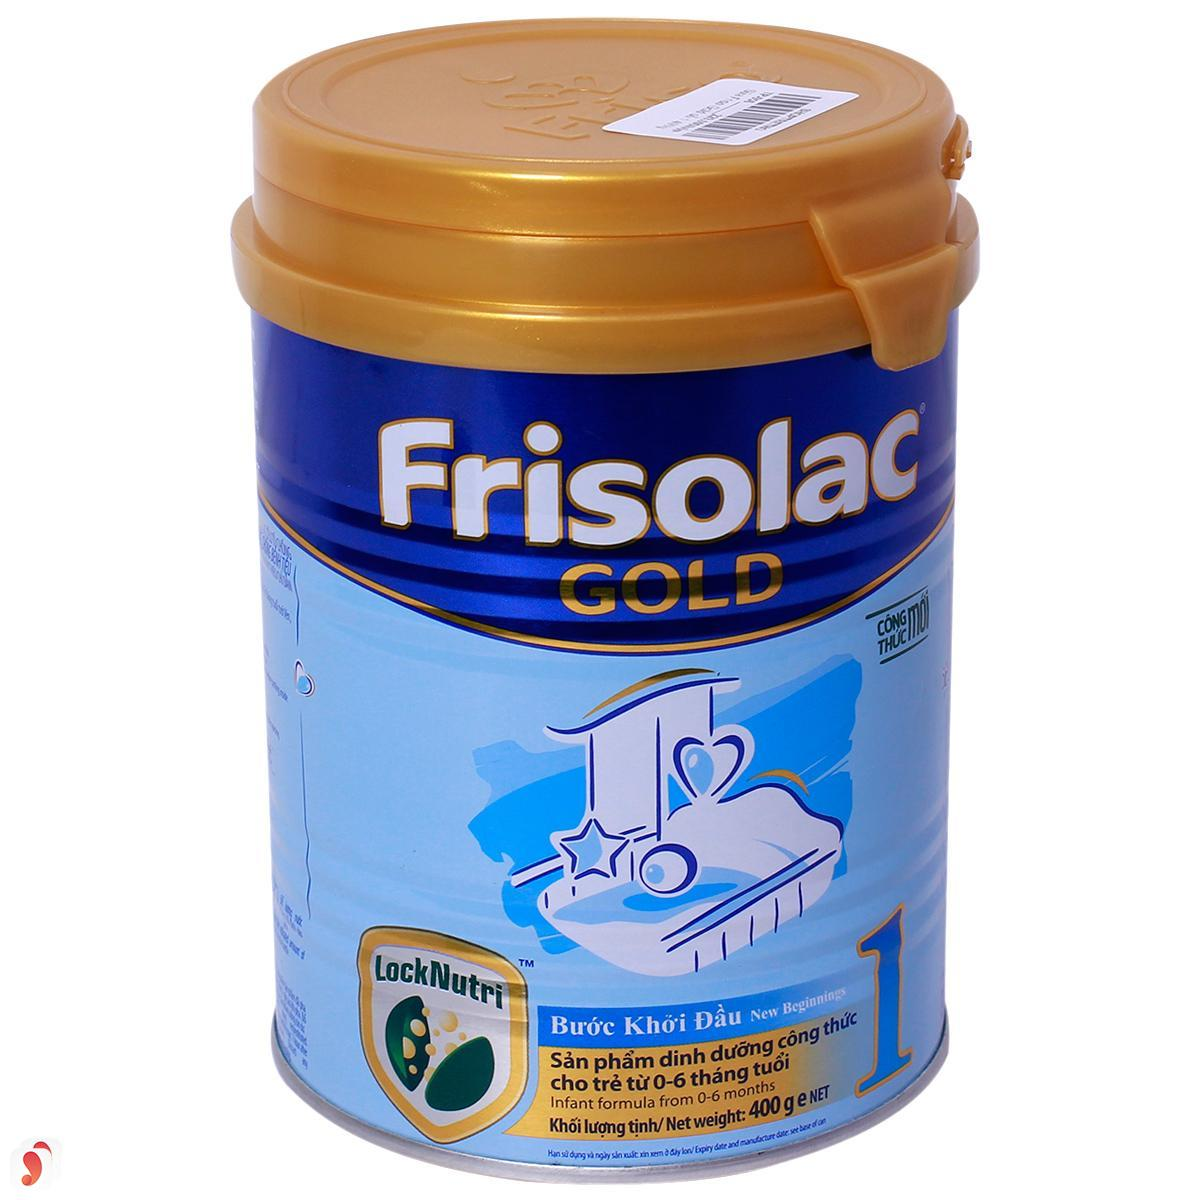 review chi tiết Frisolac Gold 1 1